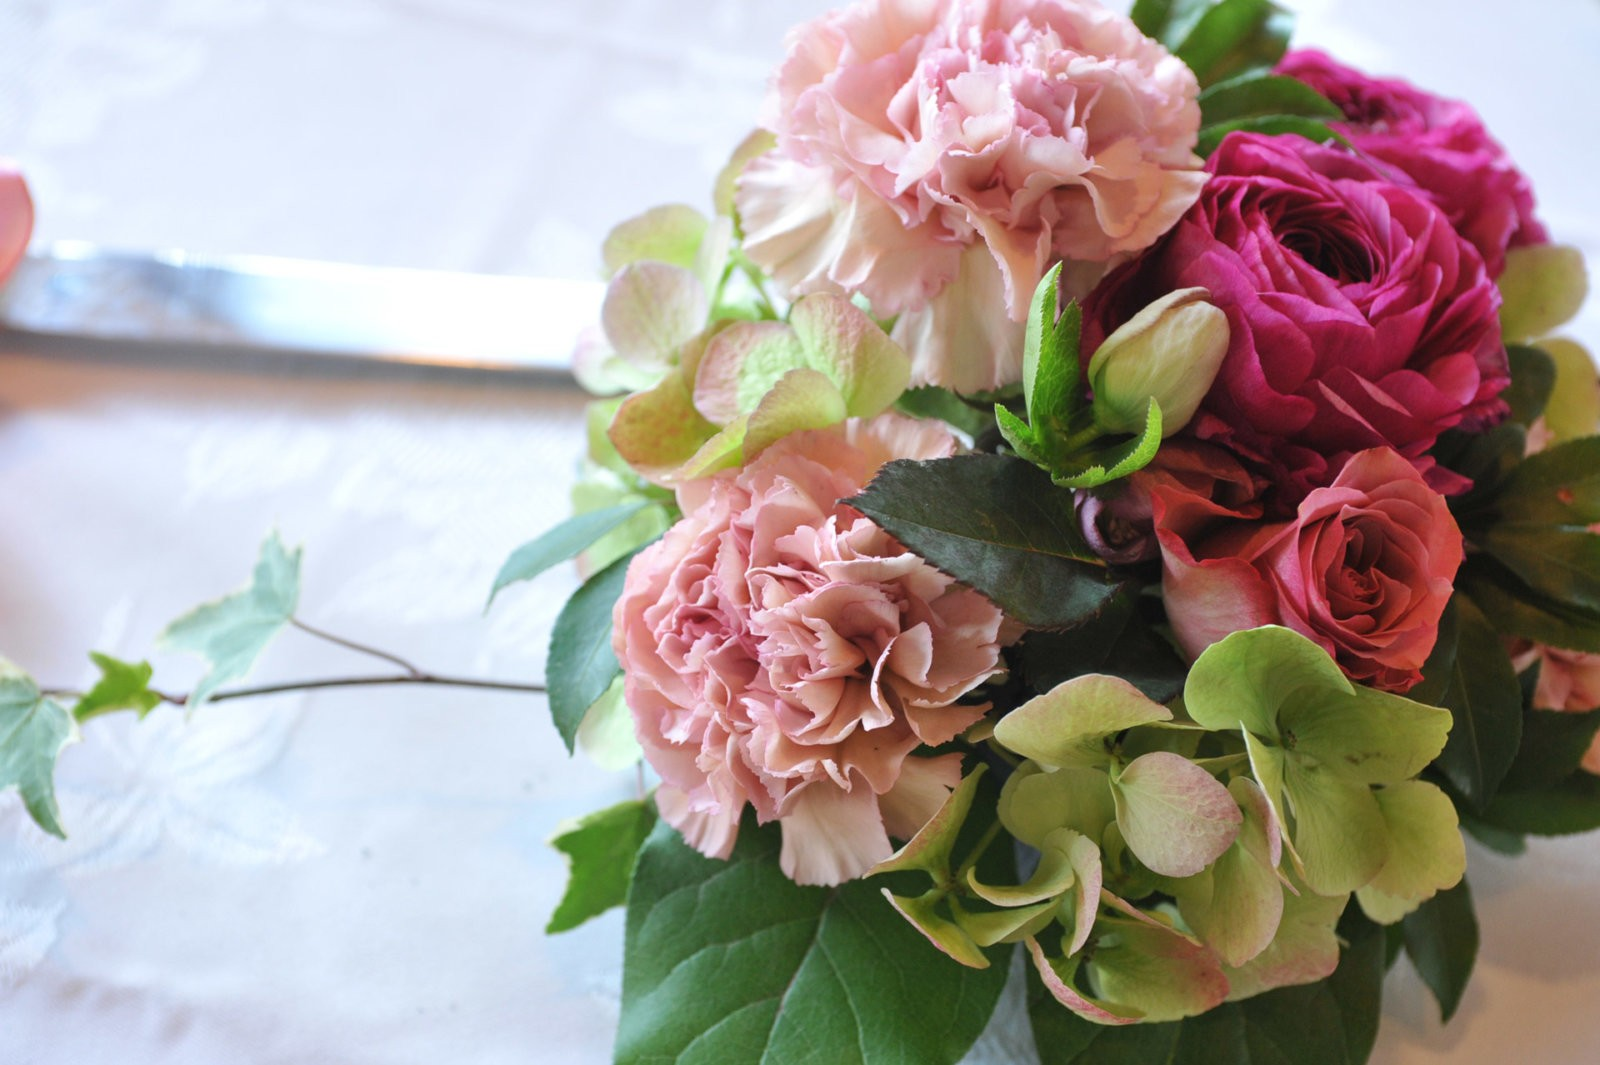 Flower arranging or floristry courses